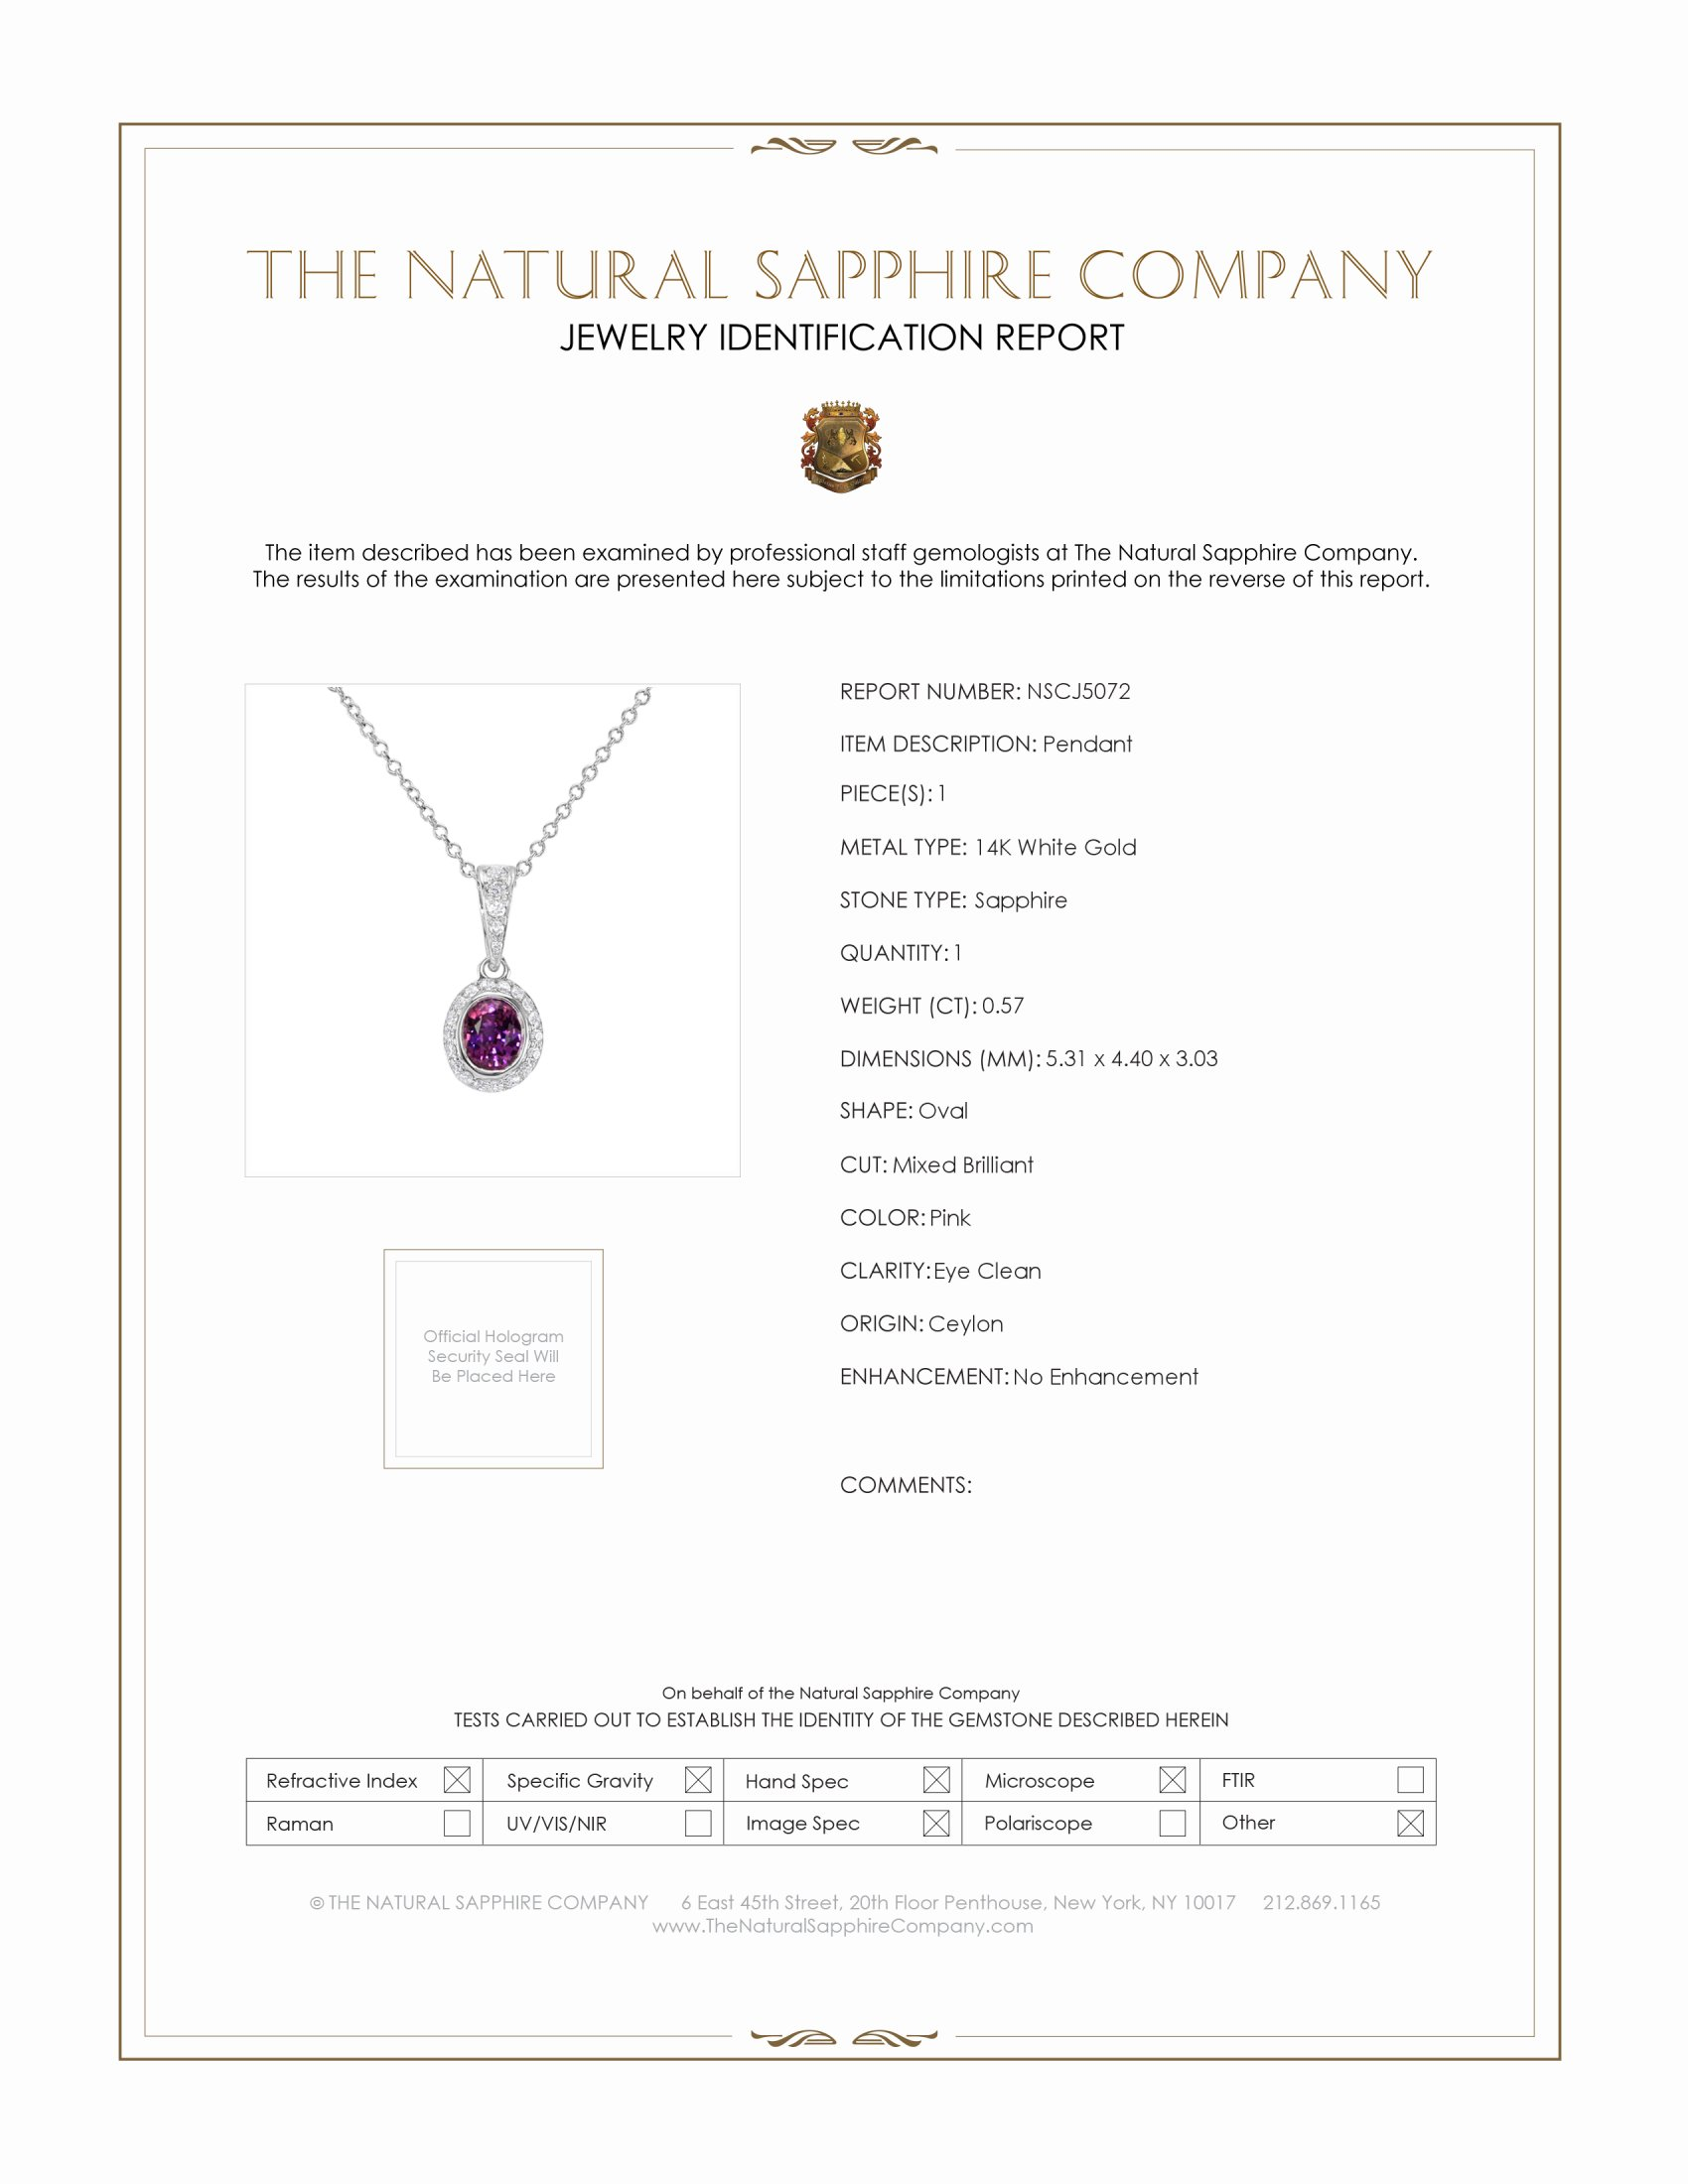 0.57ct Pink Sapphire Pendant Certification